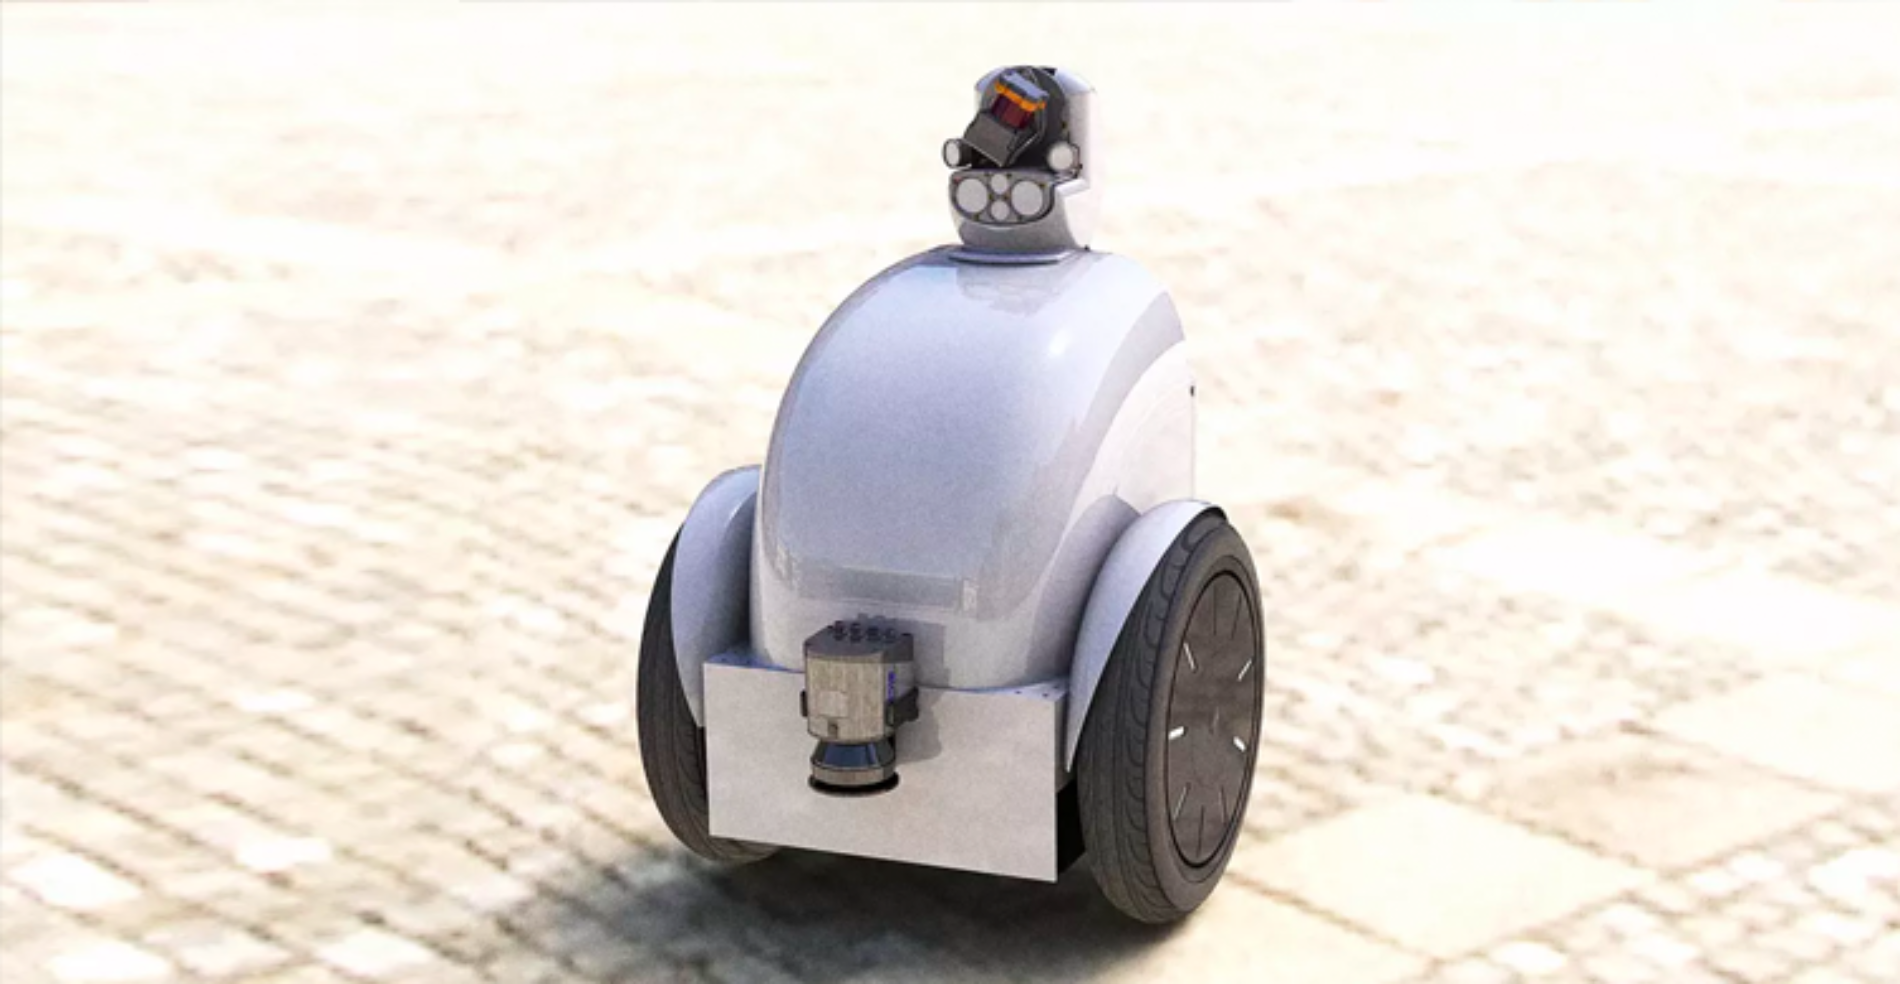 Jack Rabbot the Delivery Robot